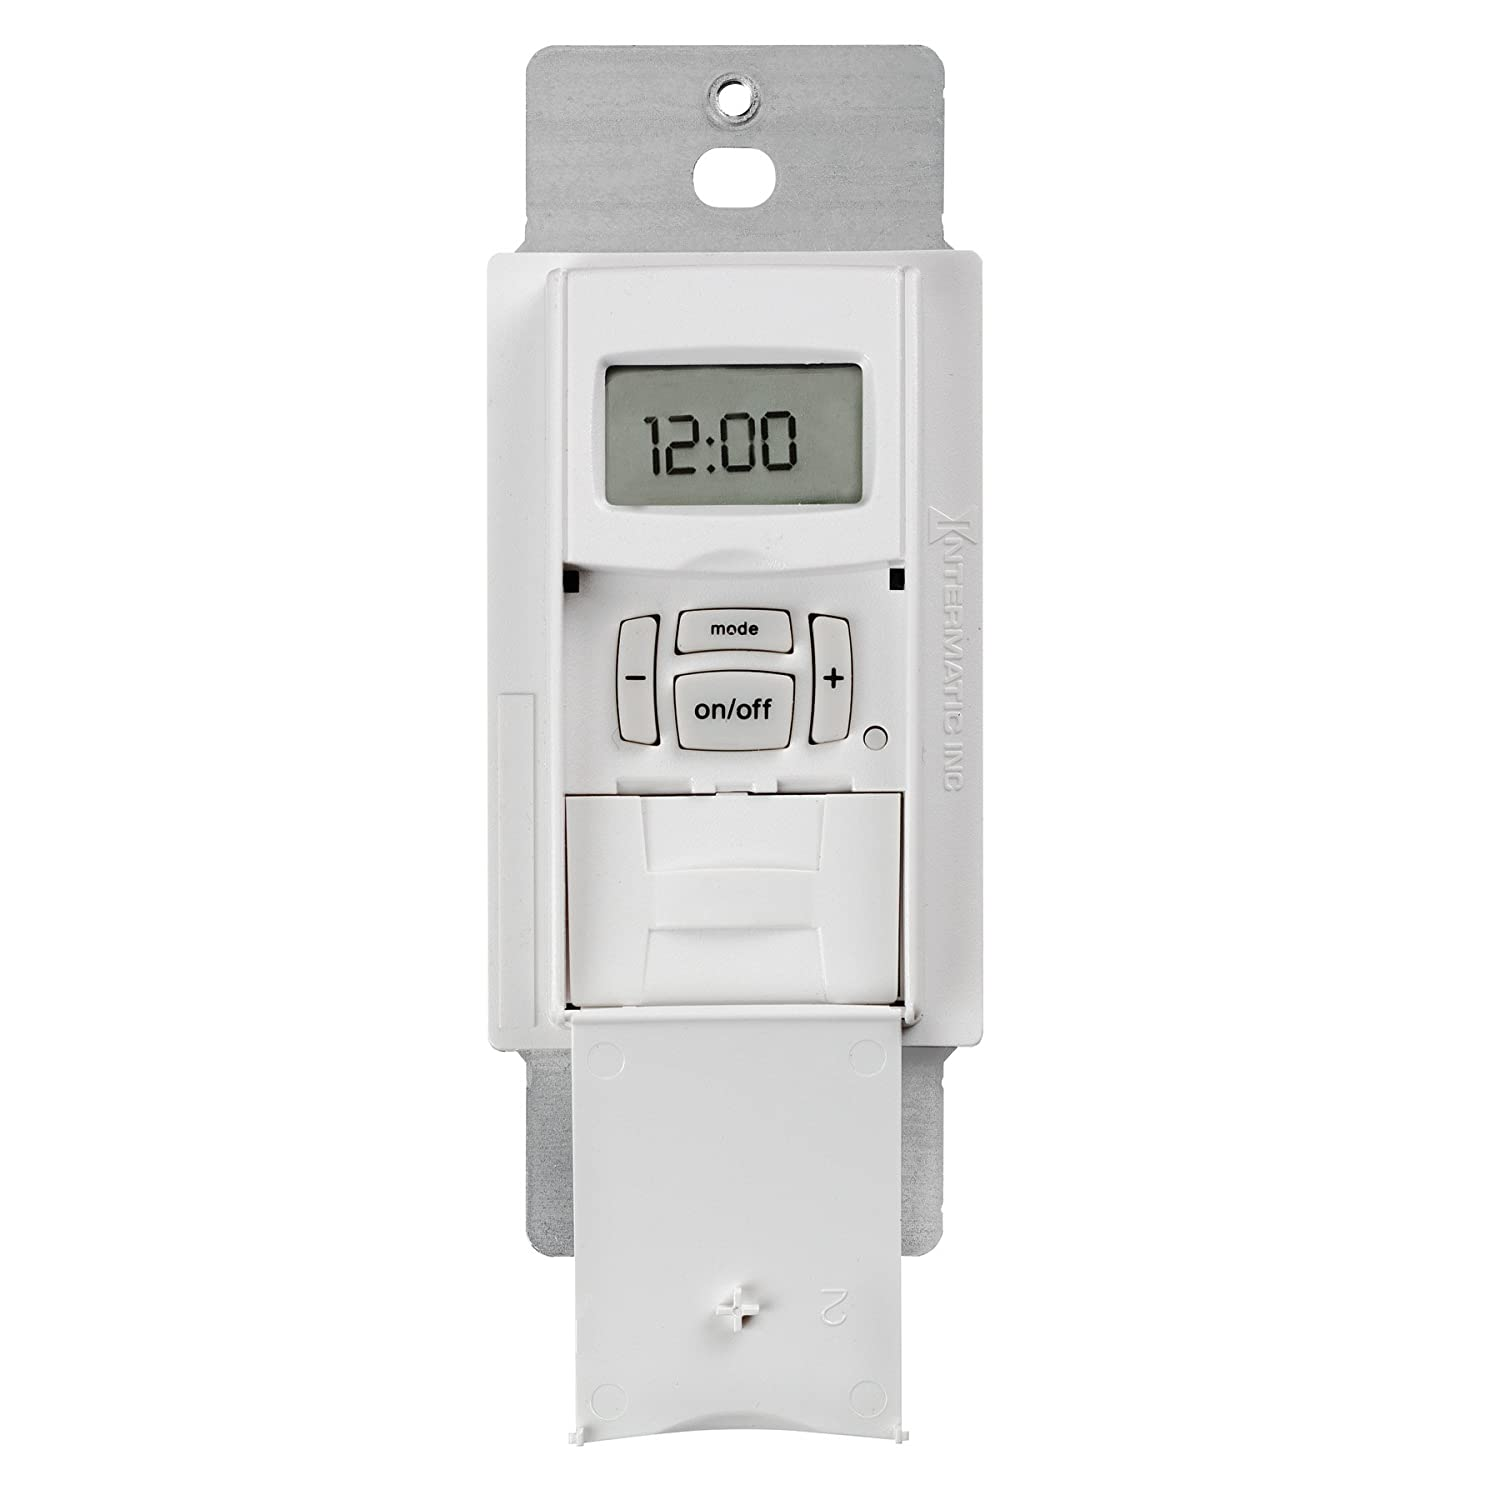 Intermatic st01 7 day programmable in wall digital timer switch for intermatic st01 7 day programmable in wall digital timer switch for lights and appliances astronomic self adjusting heavy duty amazon mozeypictures Gallery